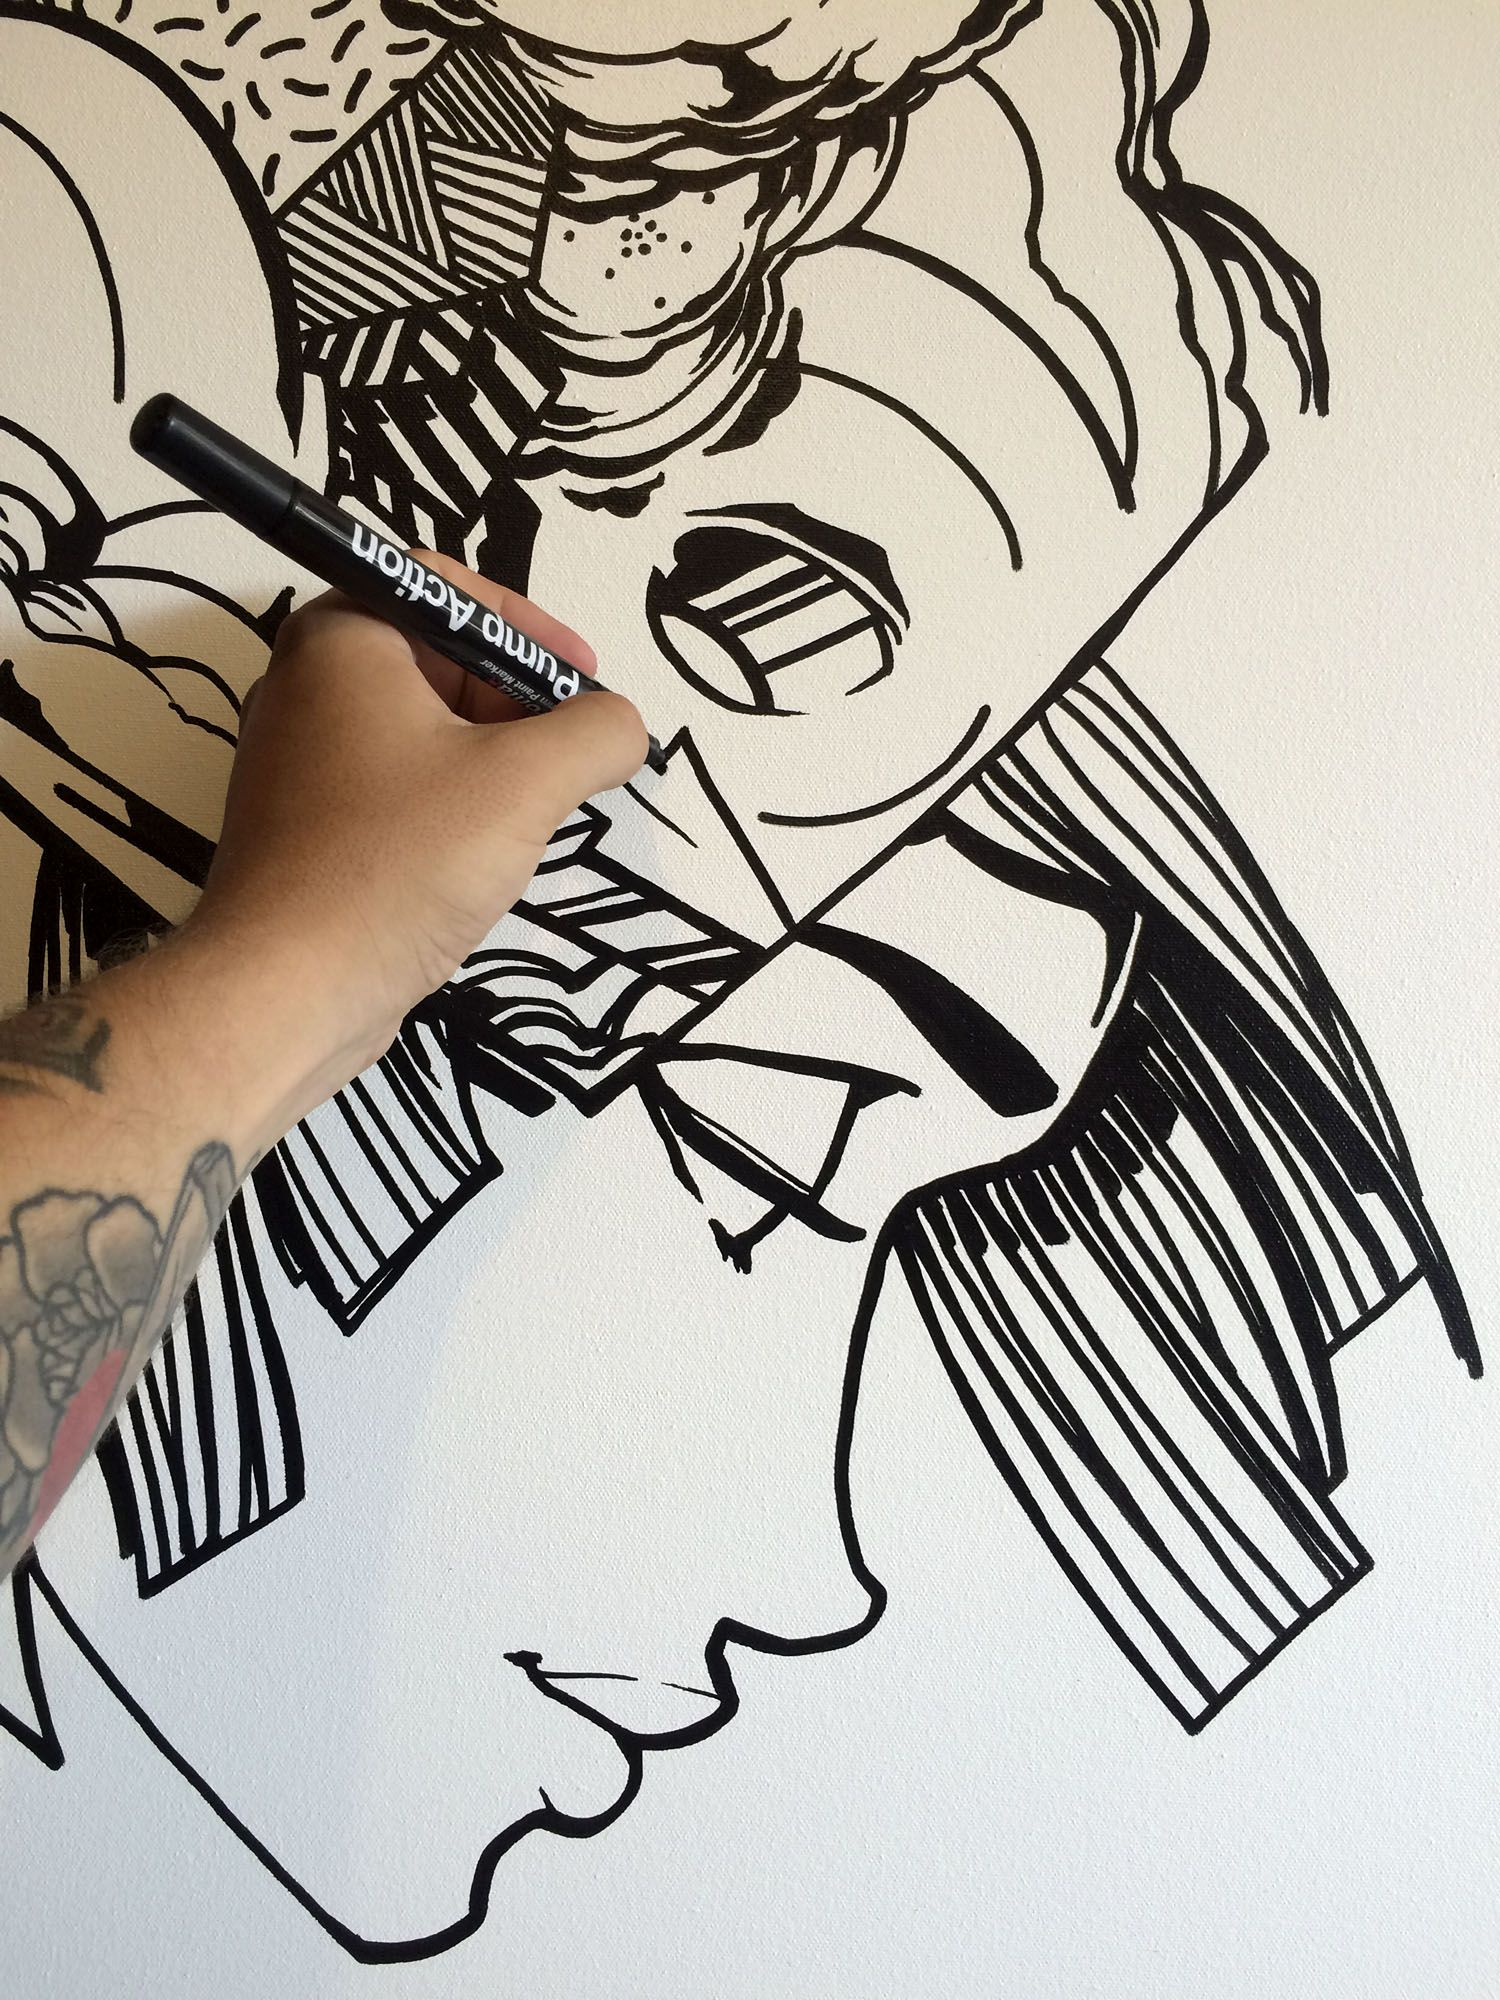 Babyzimmer Tattoo Sofles Work In Progress For Surface Tension Exhibition In Brisbane